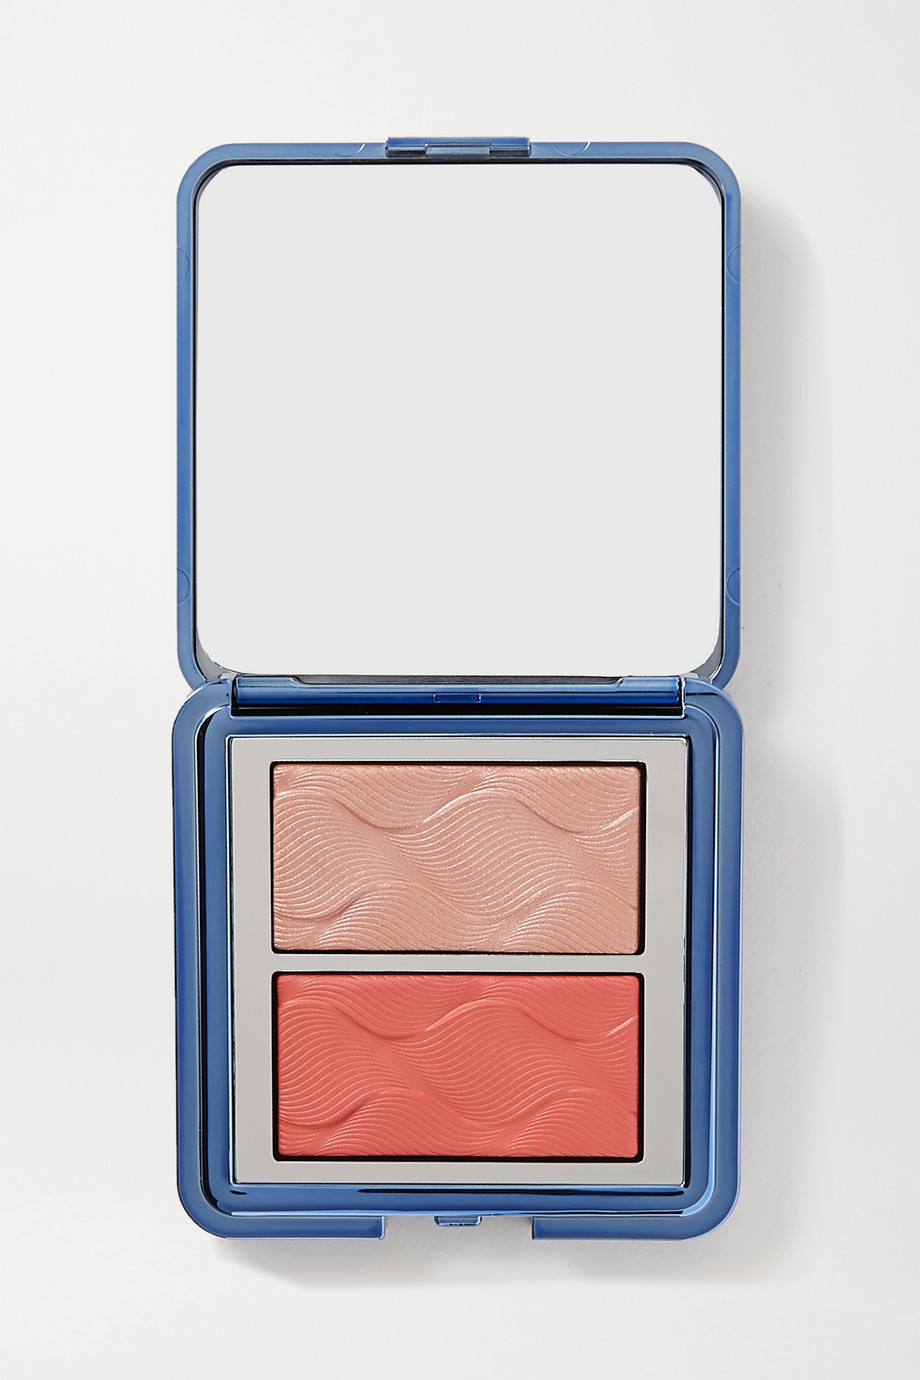 Chantecaille Radiance Chic Cheek and Highlighter Duo - Coral Manta Ray